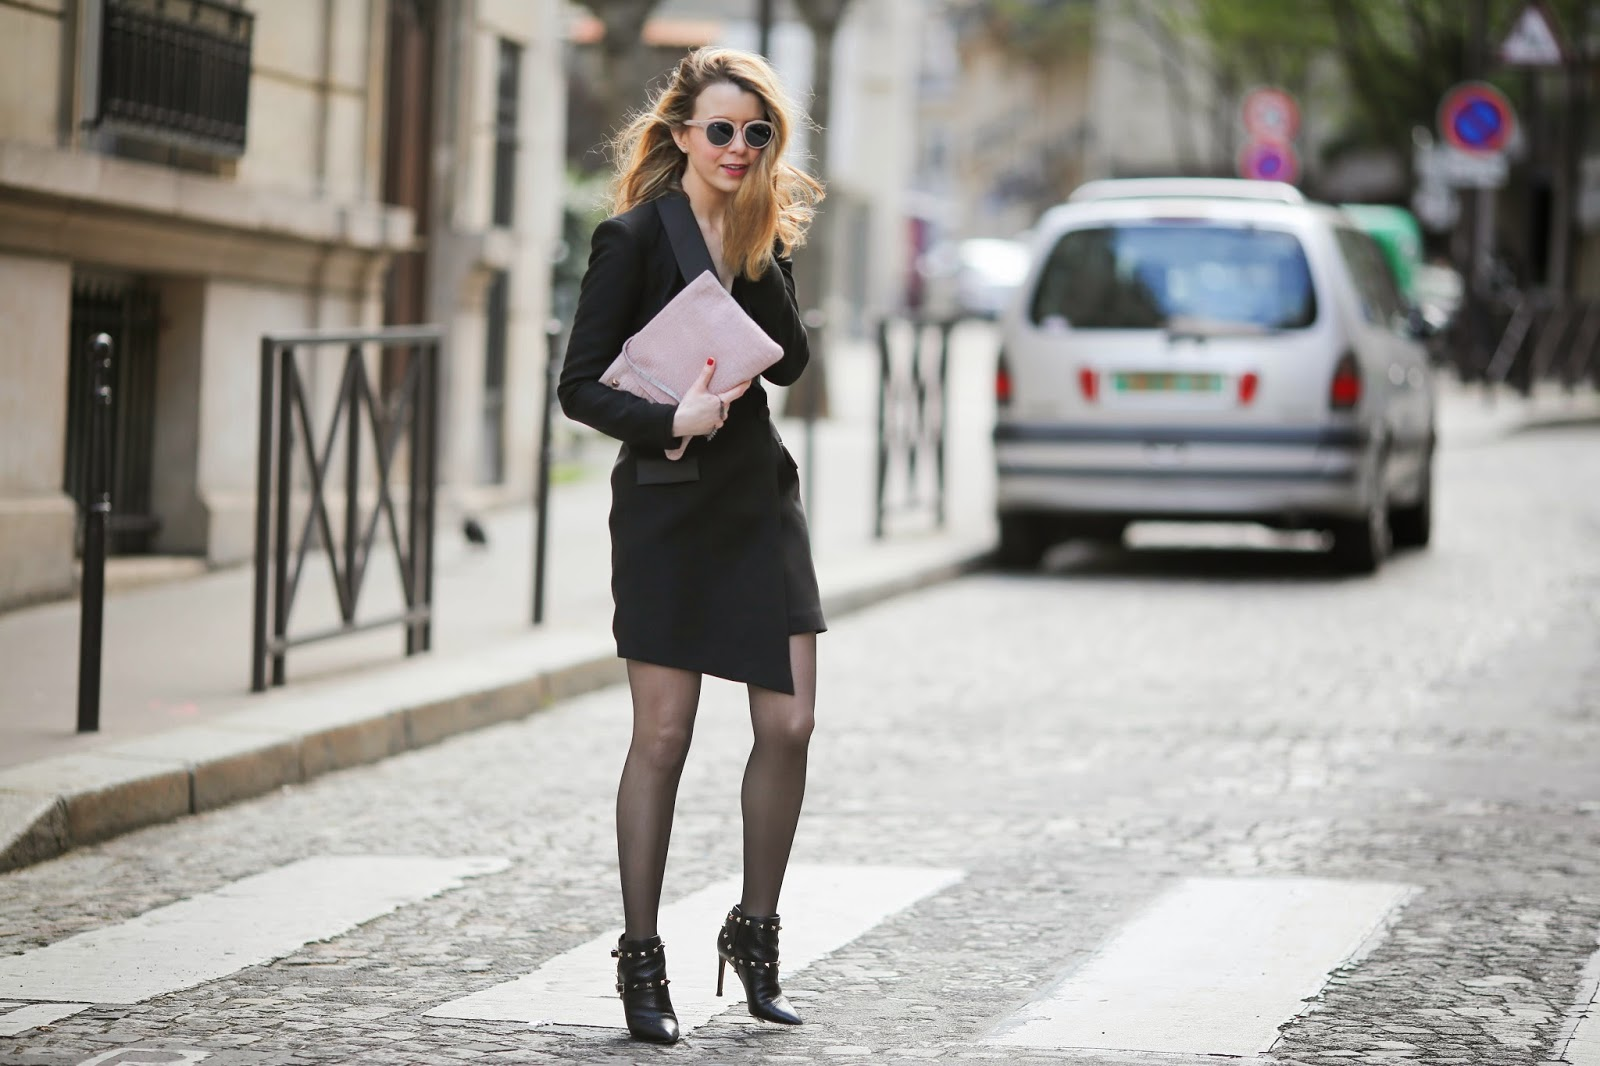 pearl and rubies, high fashion, valentino, gaydamak, streetstyle, paris, roc eyewear